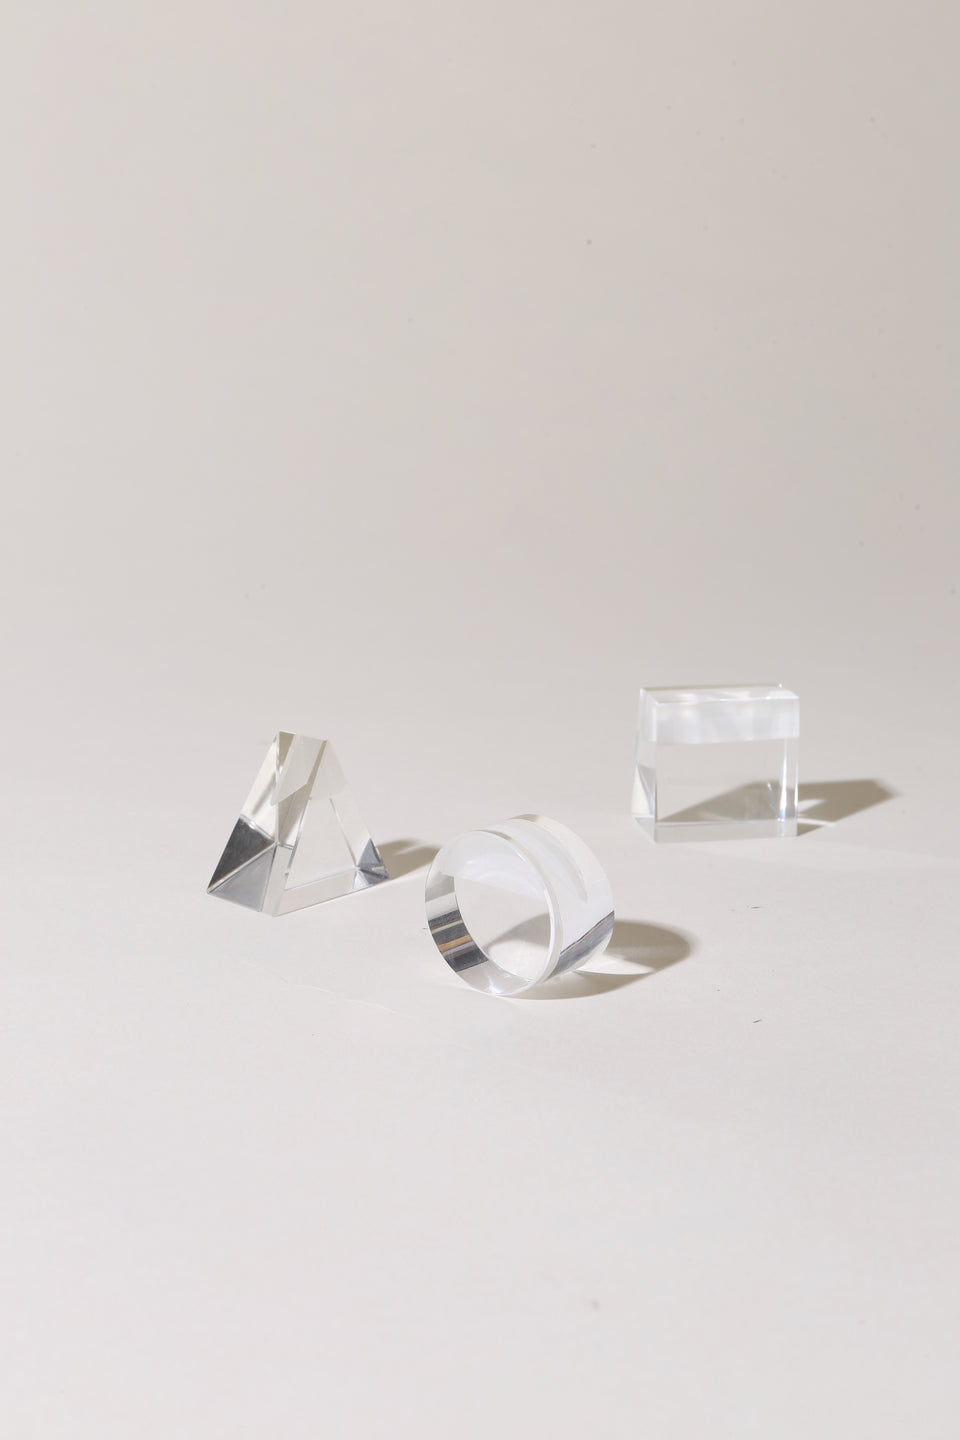 Glass Prism Geo Stands - Individual